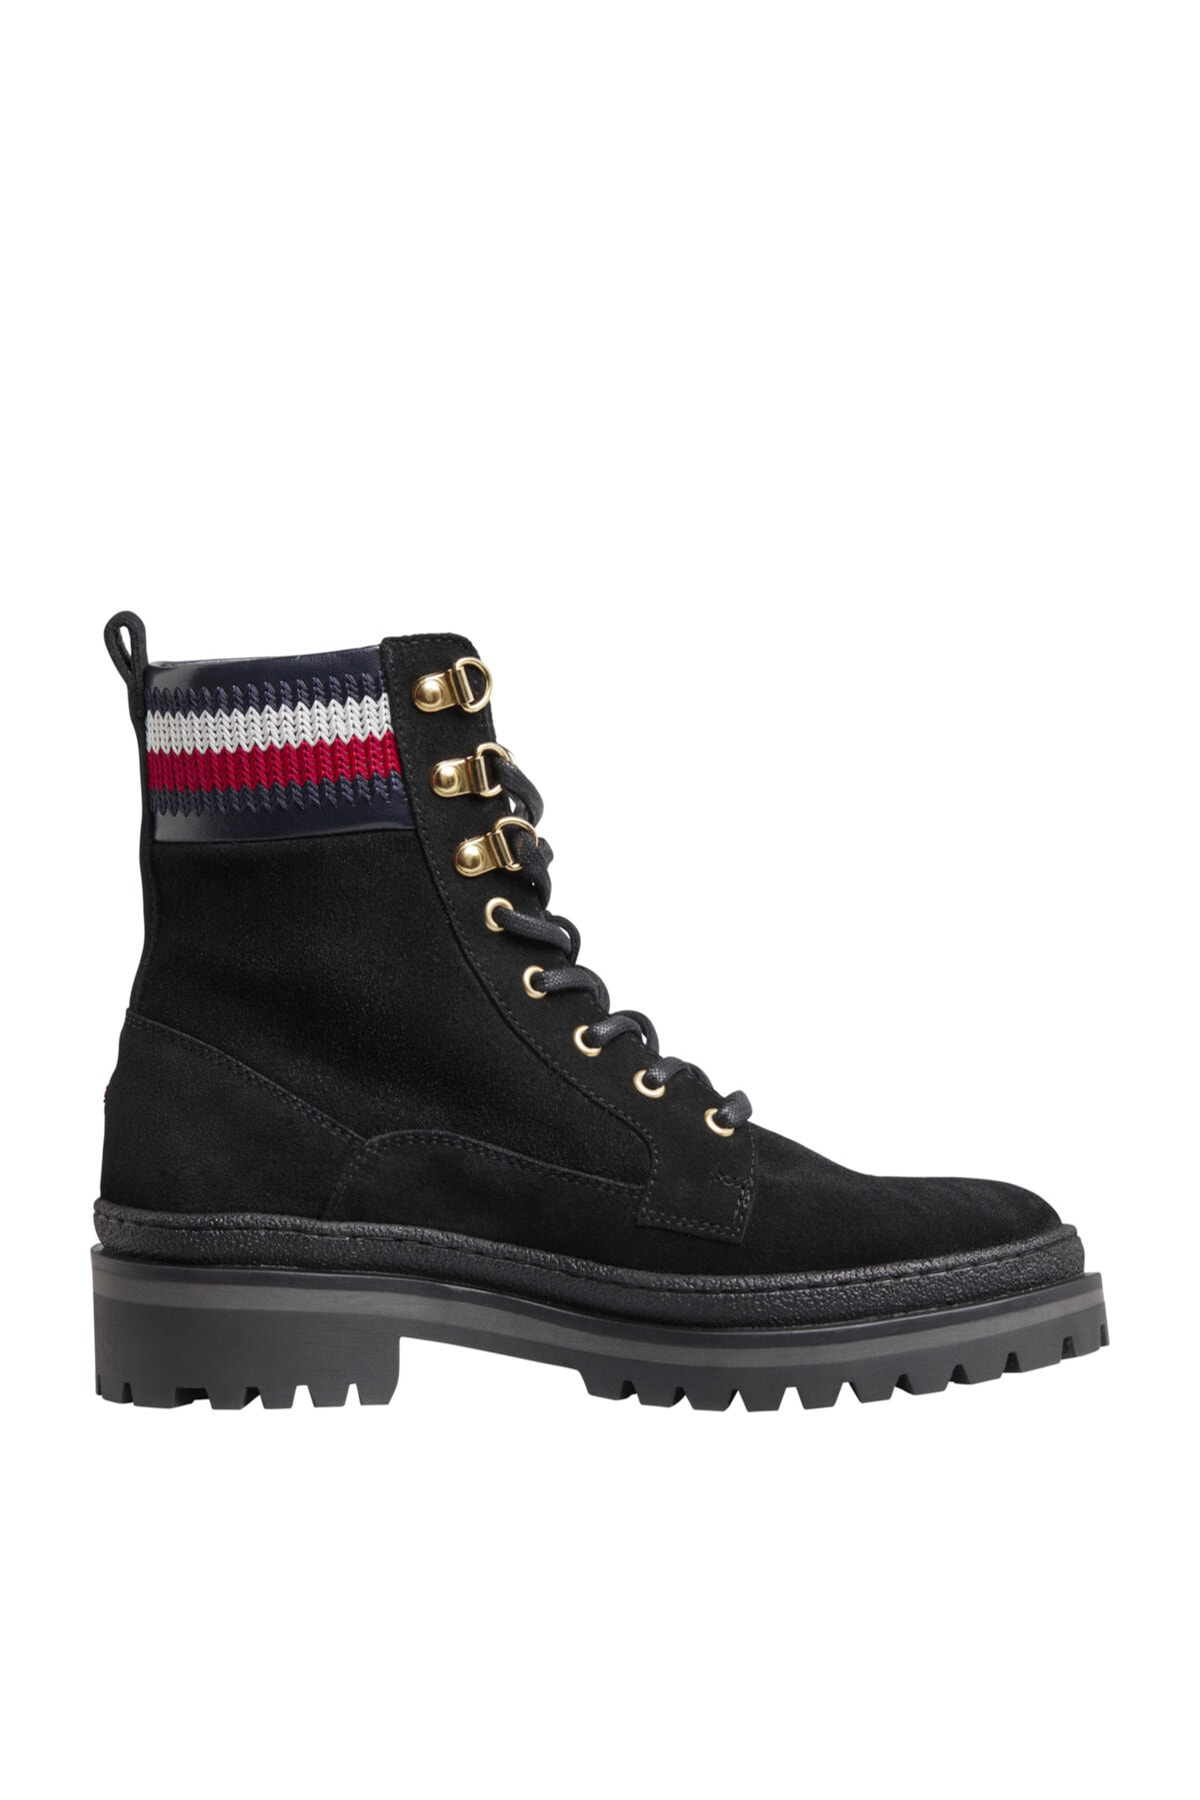 Tommy Hilfiger Kadın Rugged Classic Lace Up Flat Bot Fw0fw05171 1